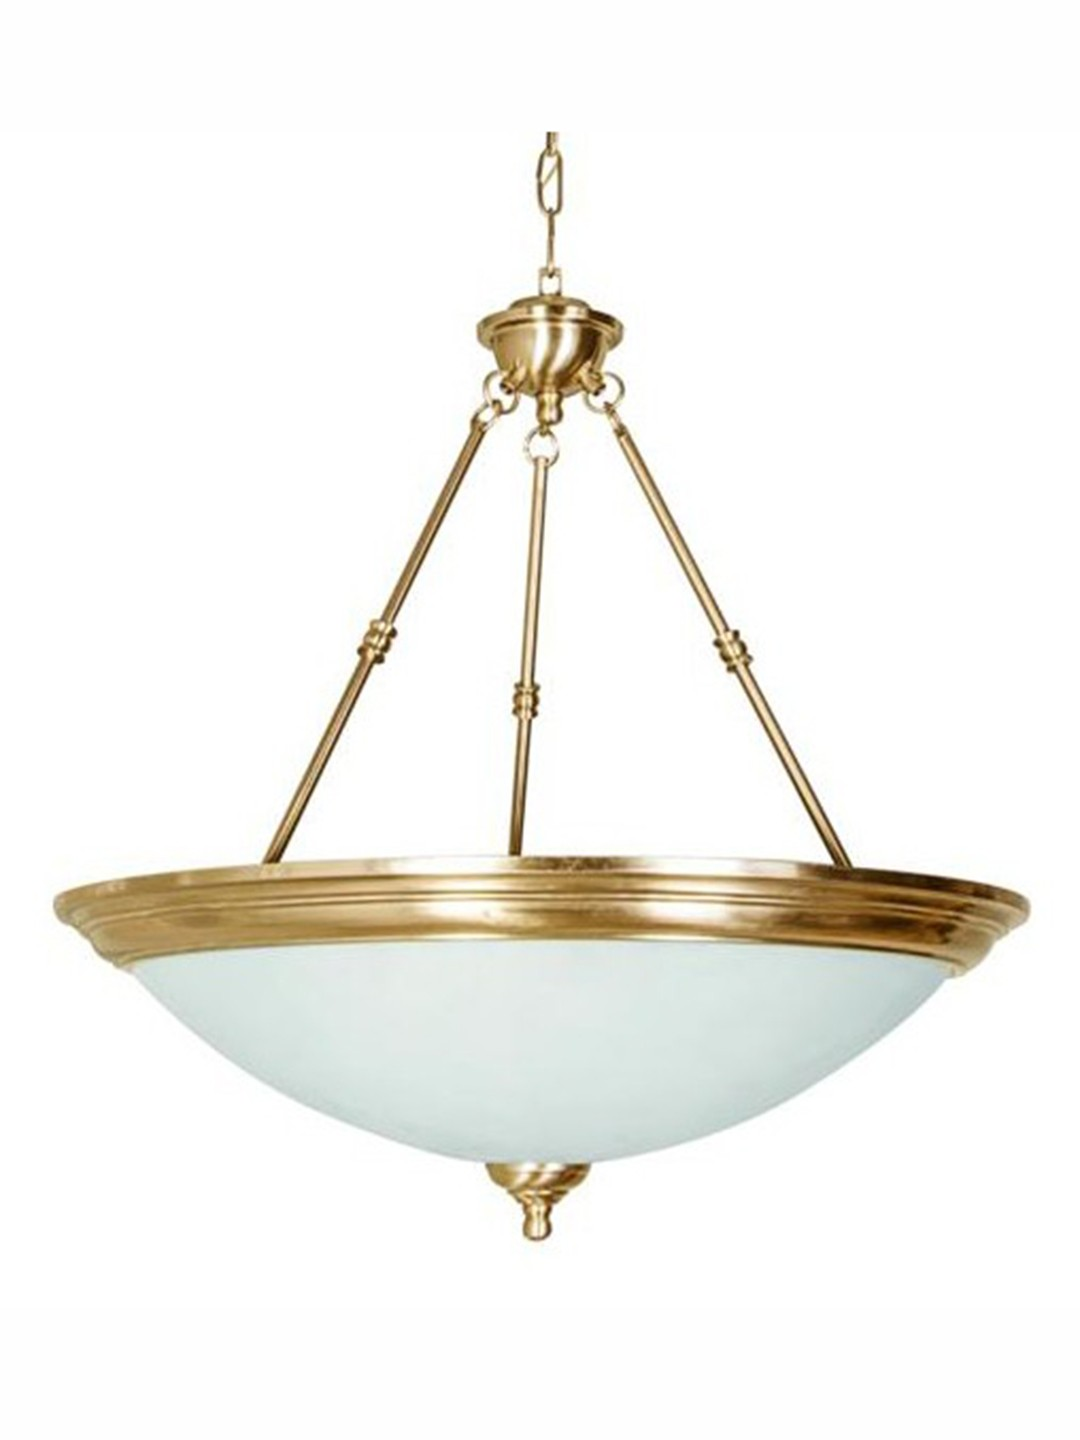 Dish Antique Brass Top Covered 5 Light Hanging Light